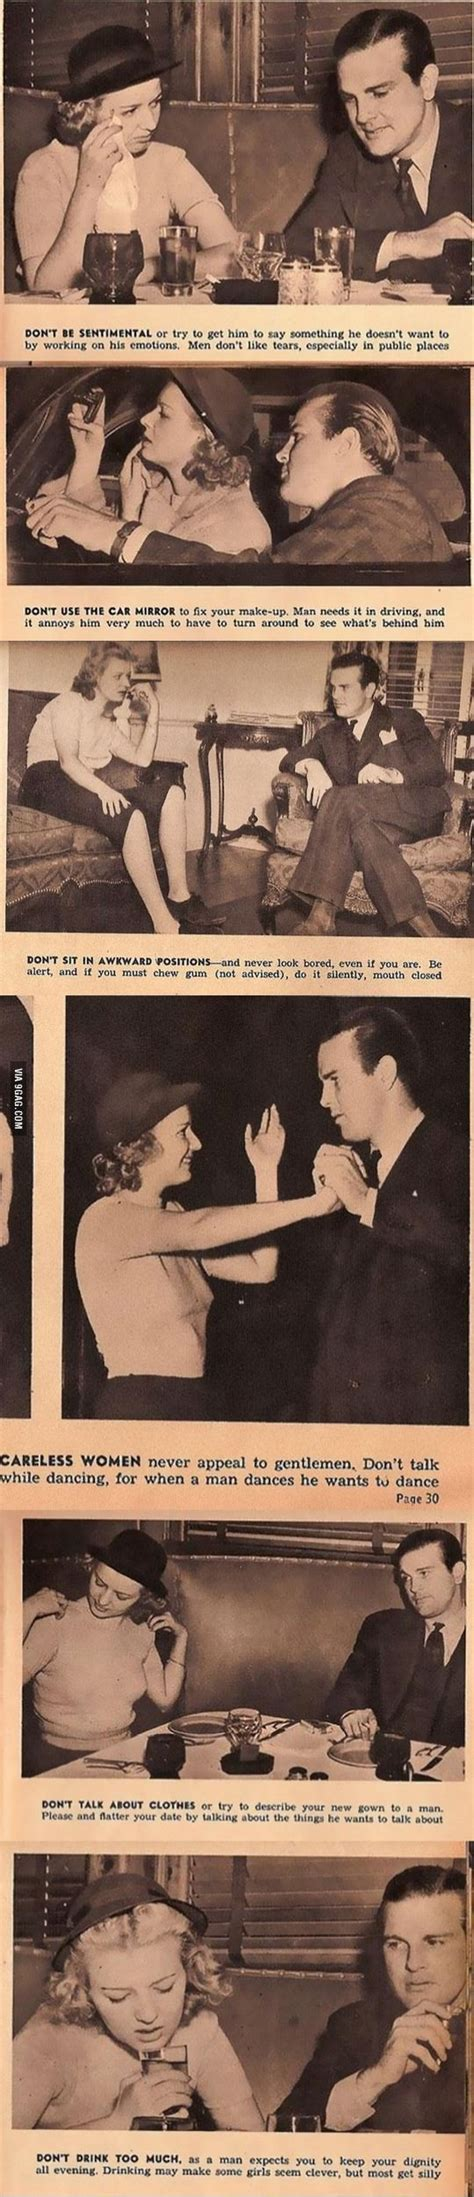 dating tips from 1938 jpg 540x2503